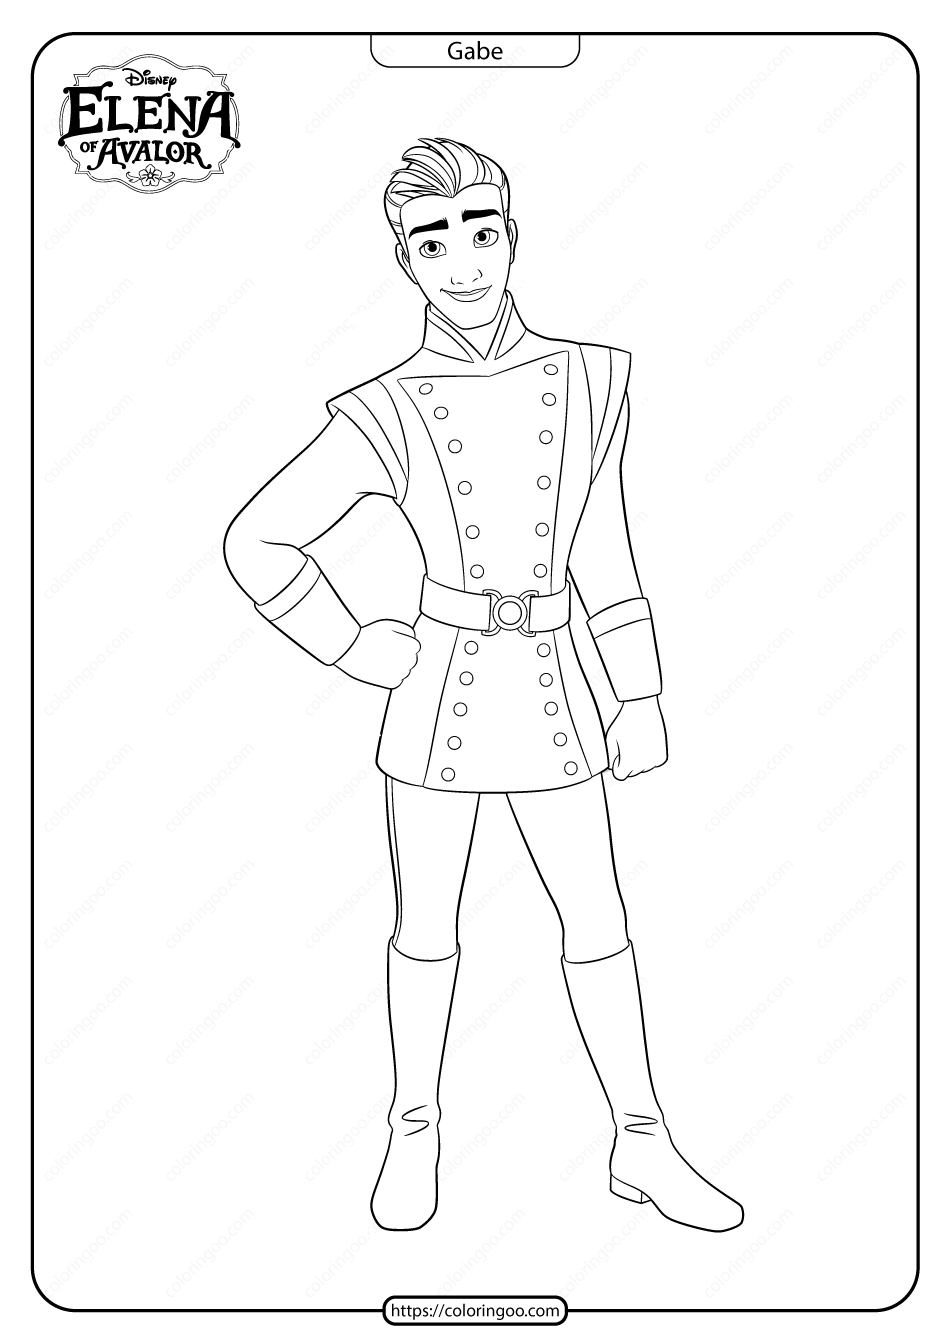 Printable Elena Of Avalor Gabe Coloring Pages In 2020 Disney Character Drawings Coloring Pages Disney Coloring Pages